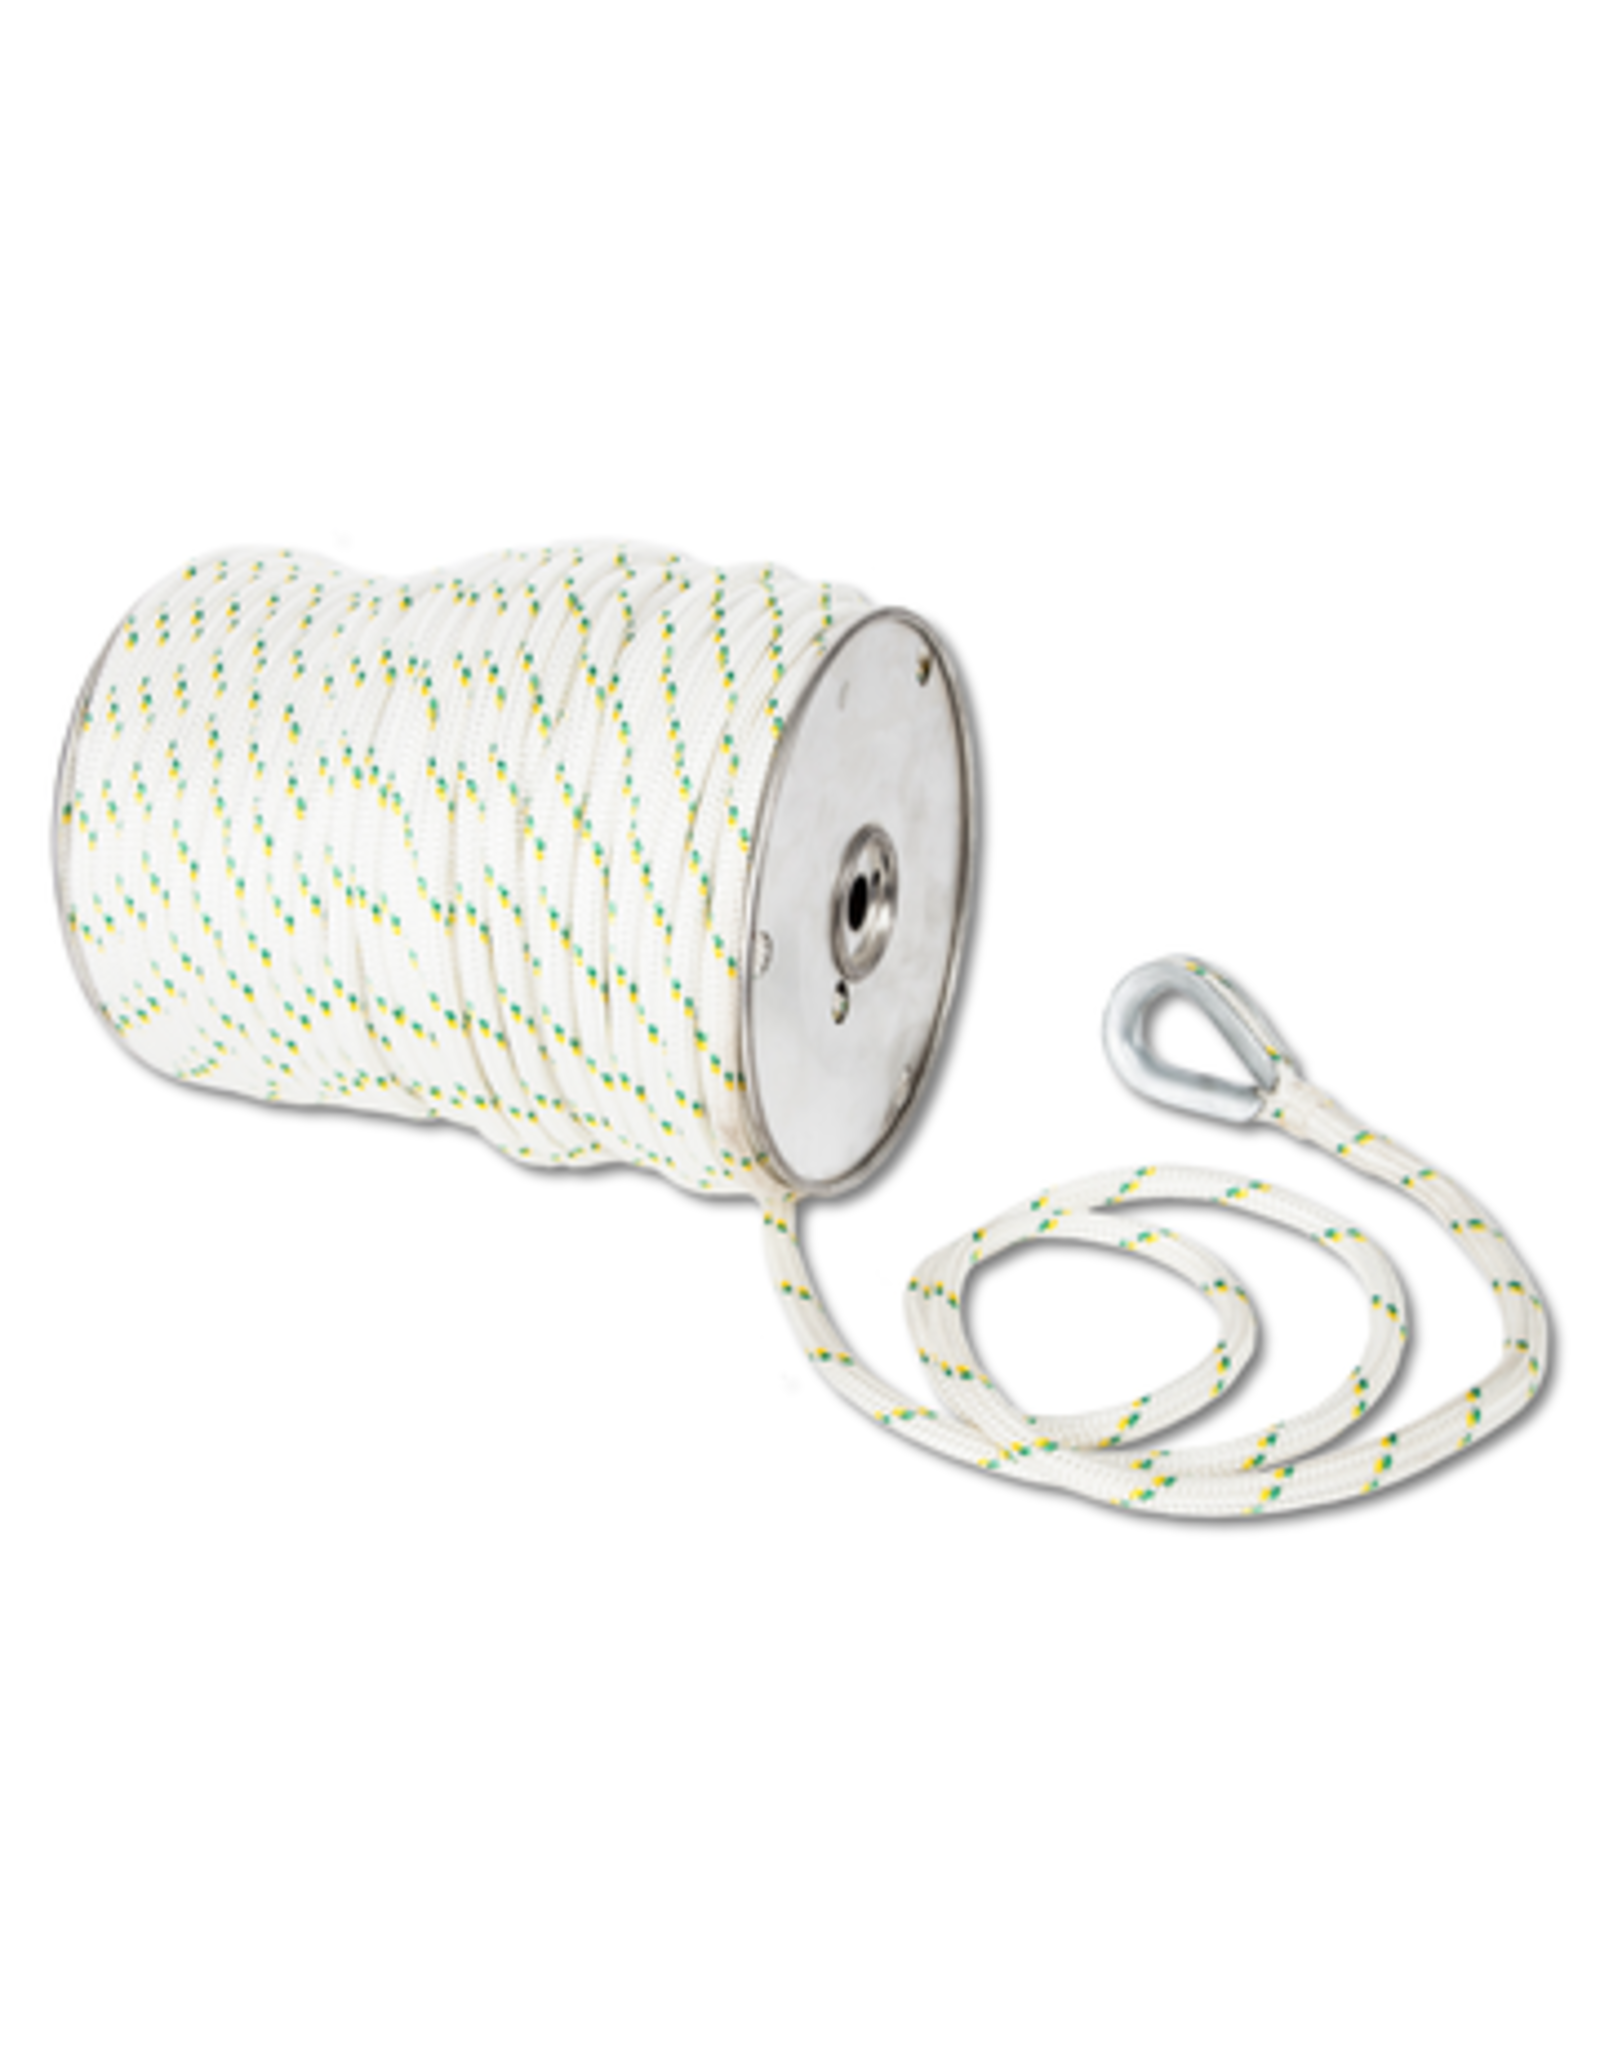 """Portable Winch PW 3/8"""" DOUBLE-BRAIDED POLYESTER ROPE WITH SPLICES AND THIMBLES 100M OR 328 FT"""